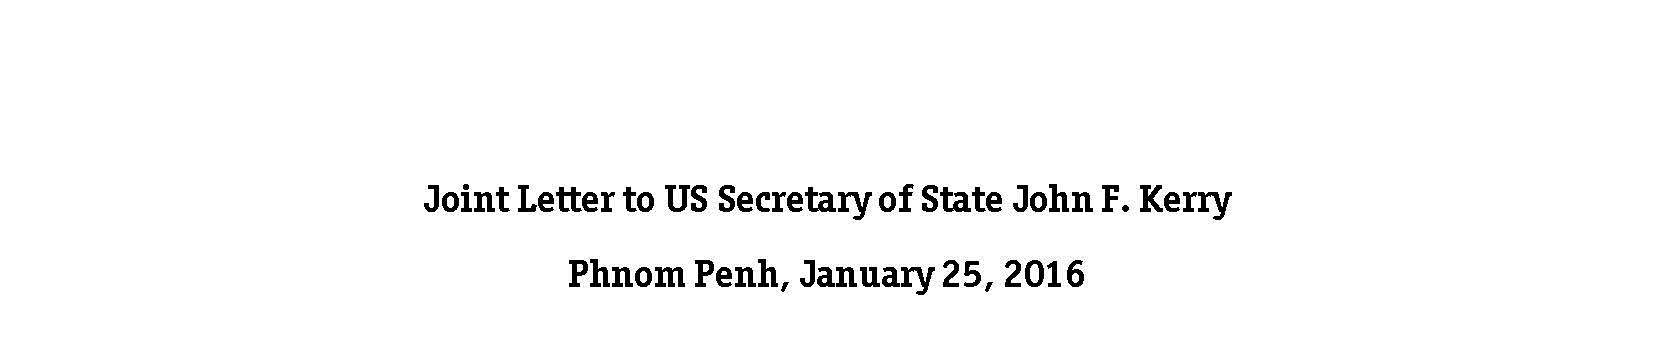 Joint Letter to US Secretary of State John F. Kerry